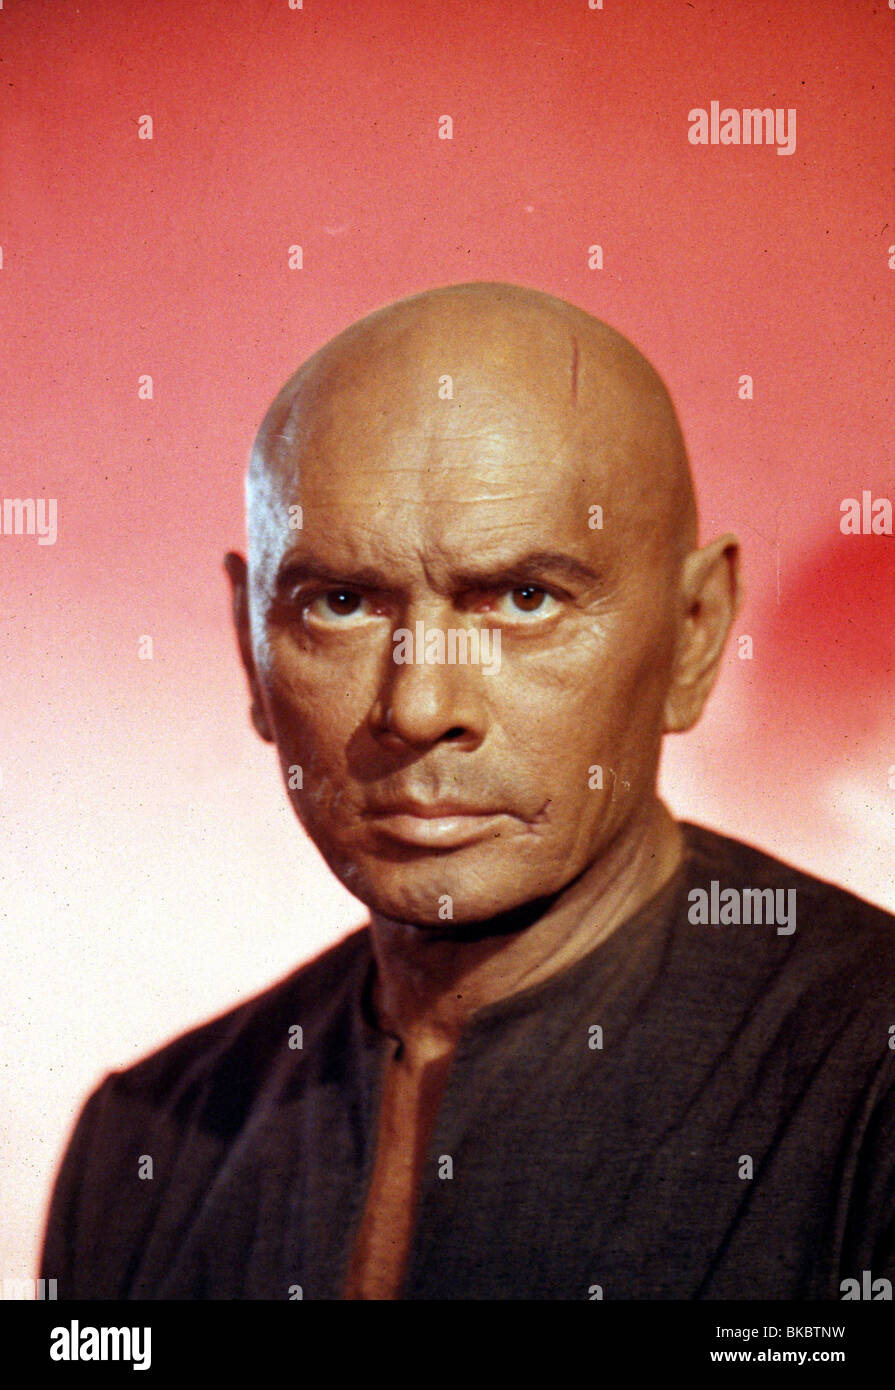 DER ULTIMATIVE KRIEGER (1975) YUL BRYNNER ULW 016 Stockbild